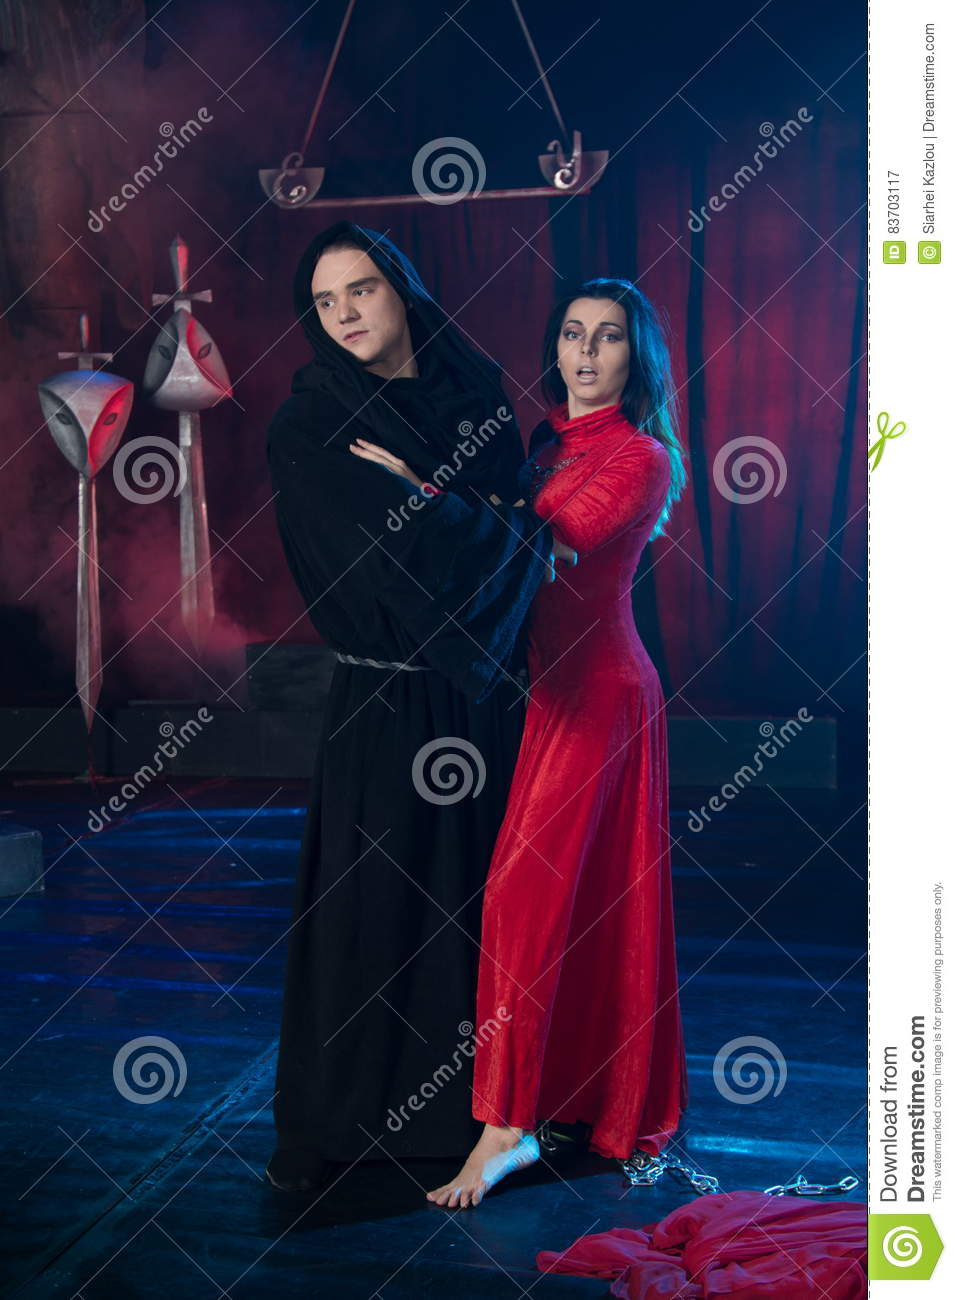 Monk Male And Female Beauty In A Red Dress. Stock Photo